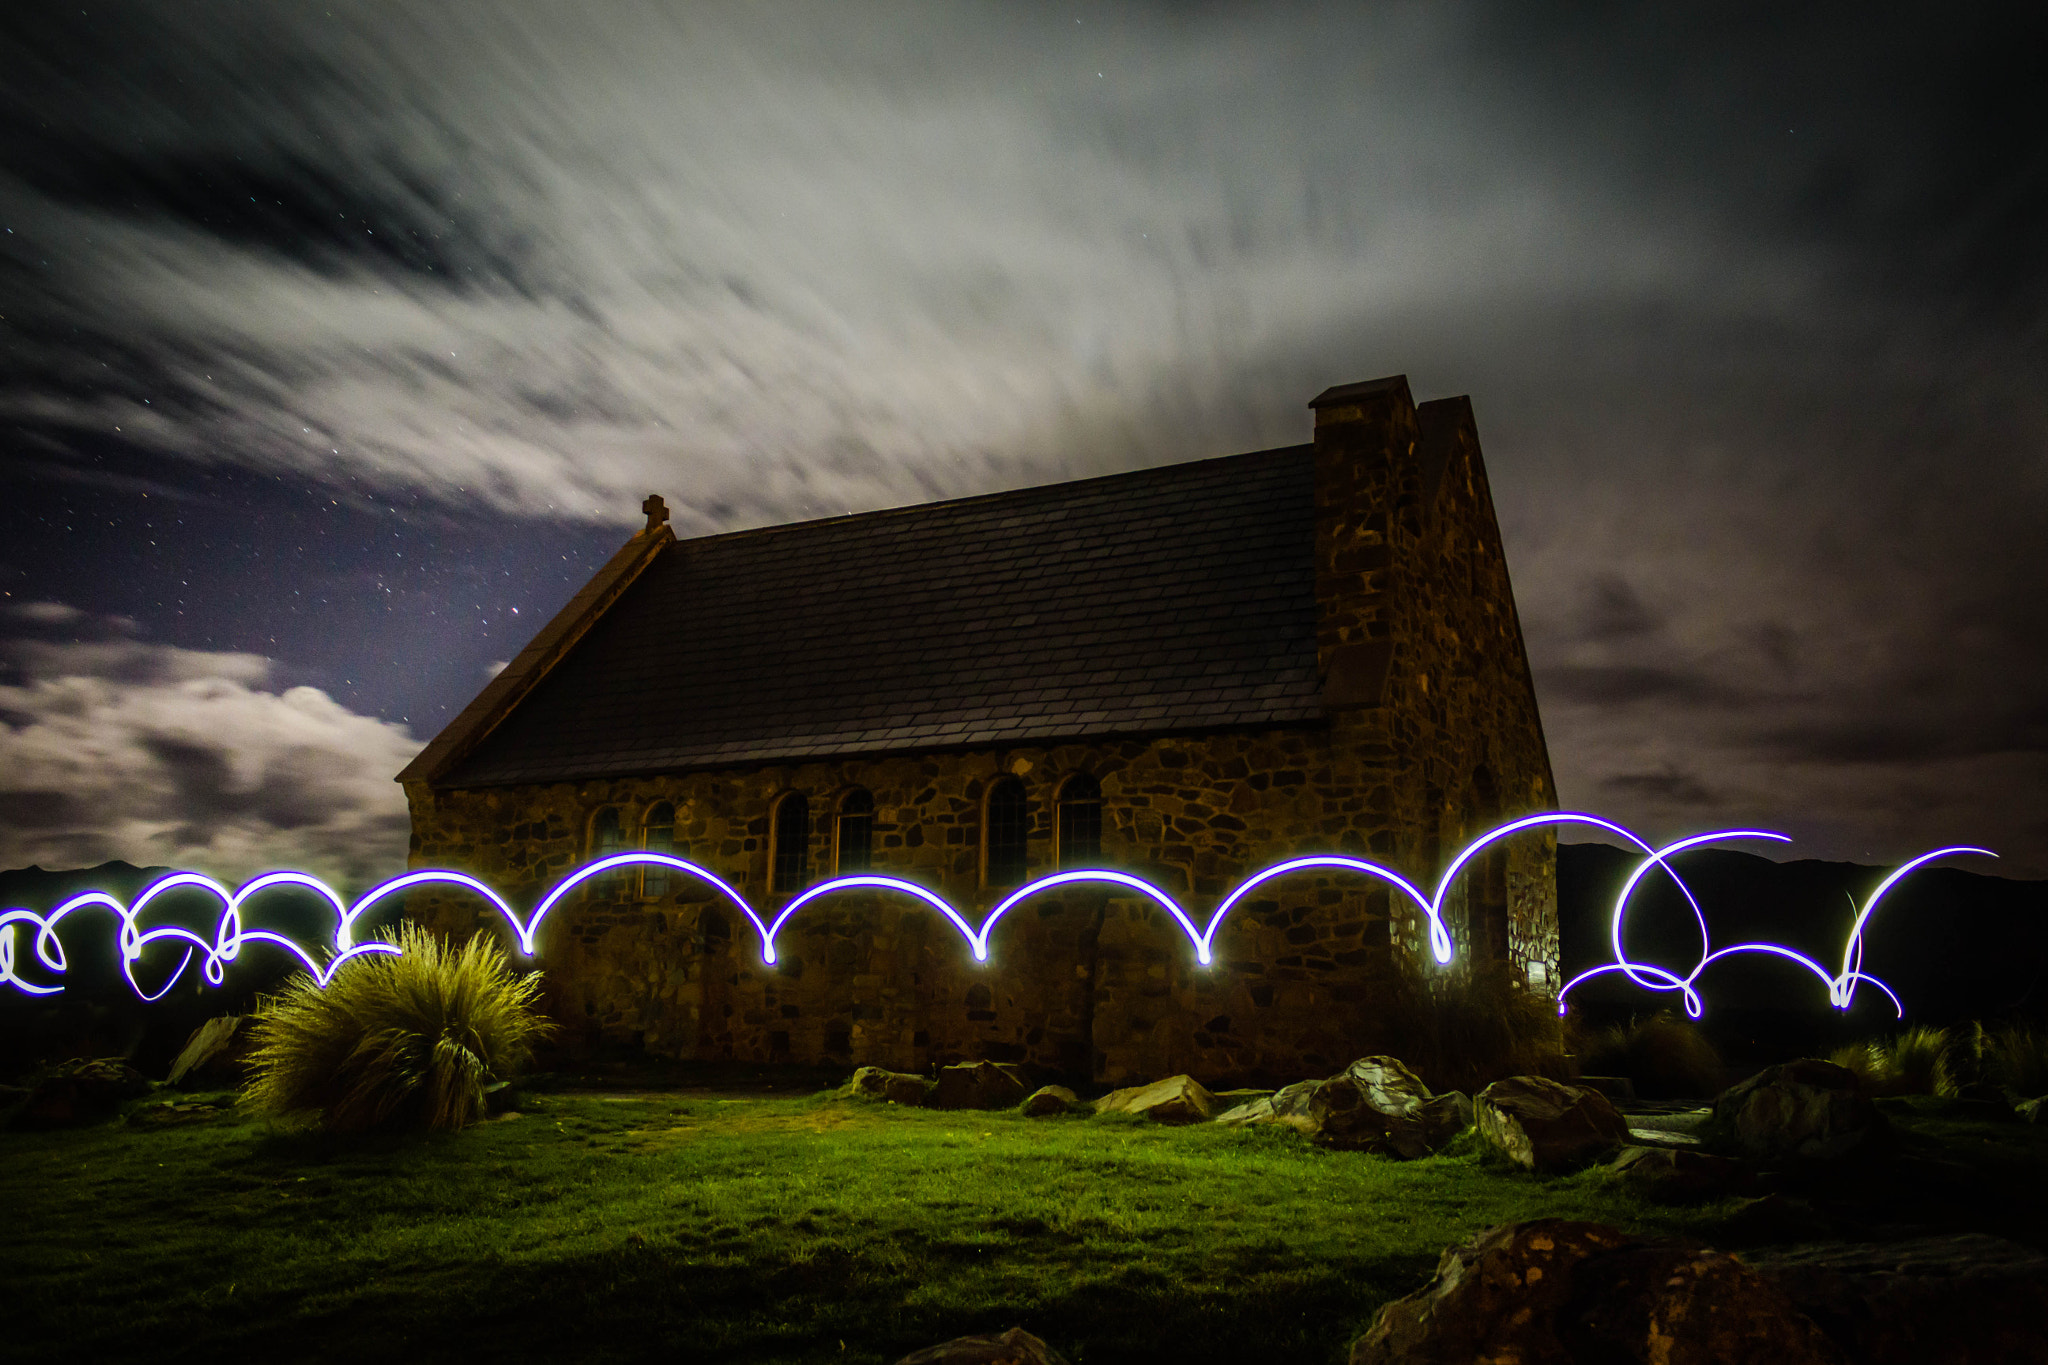 Photograph The Church of the Good Shepherd by Andrew Goodlad on 500px